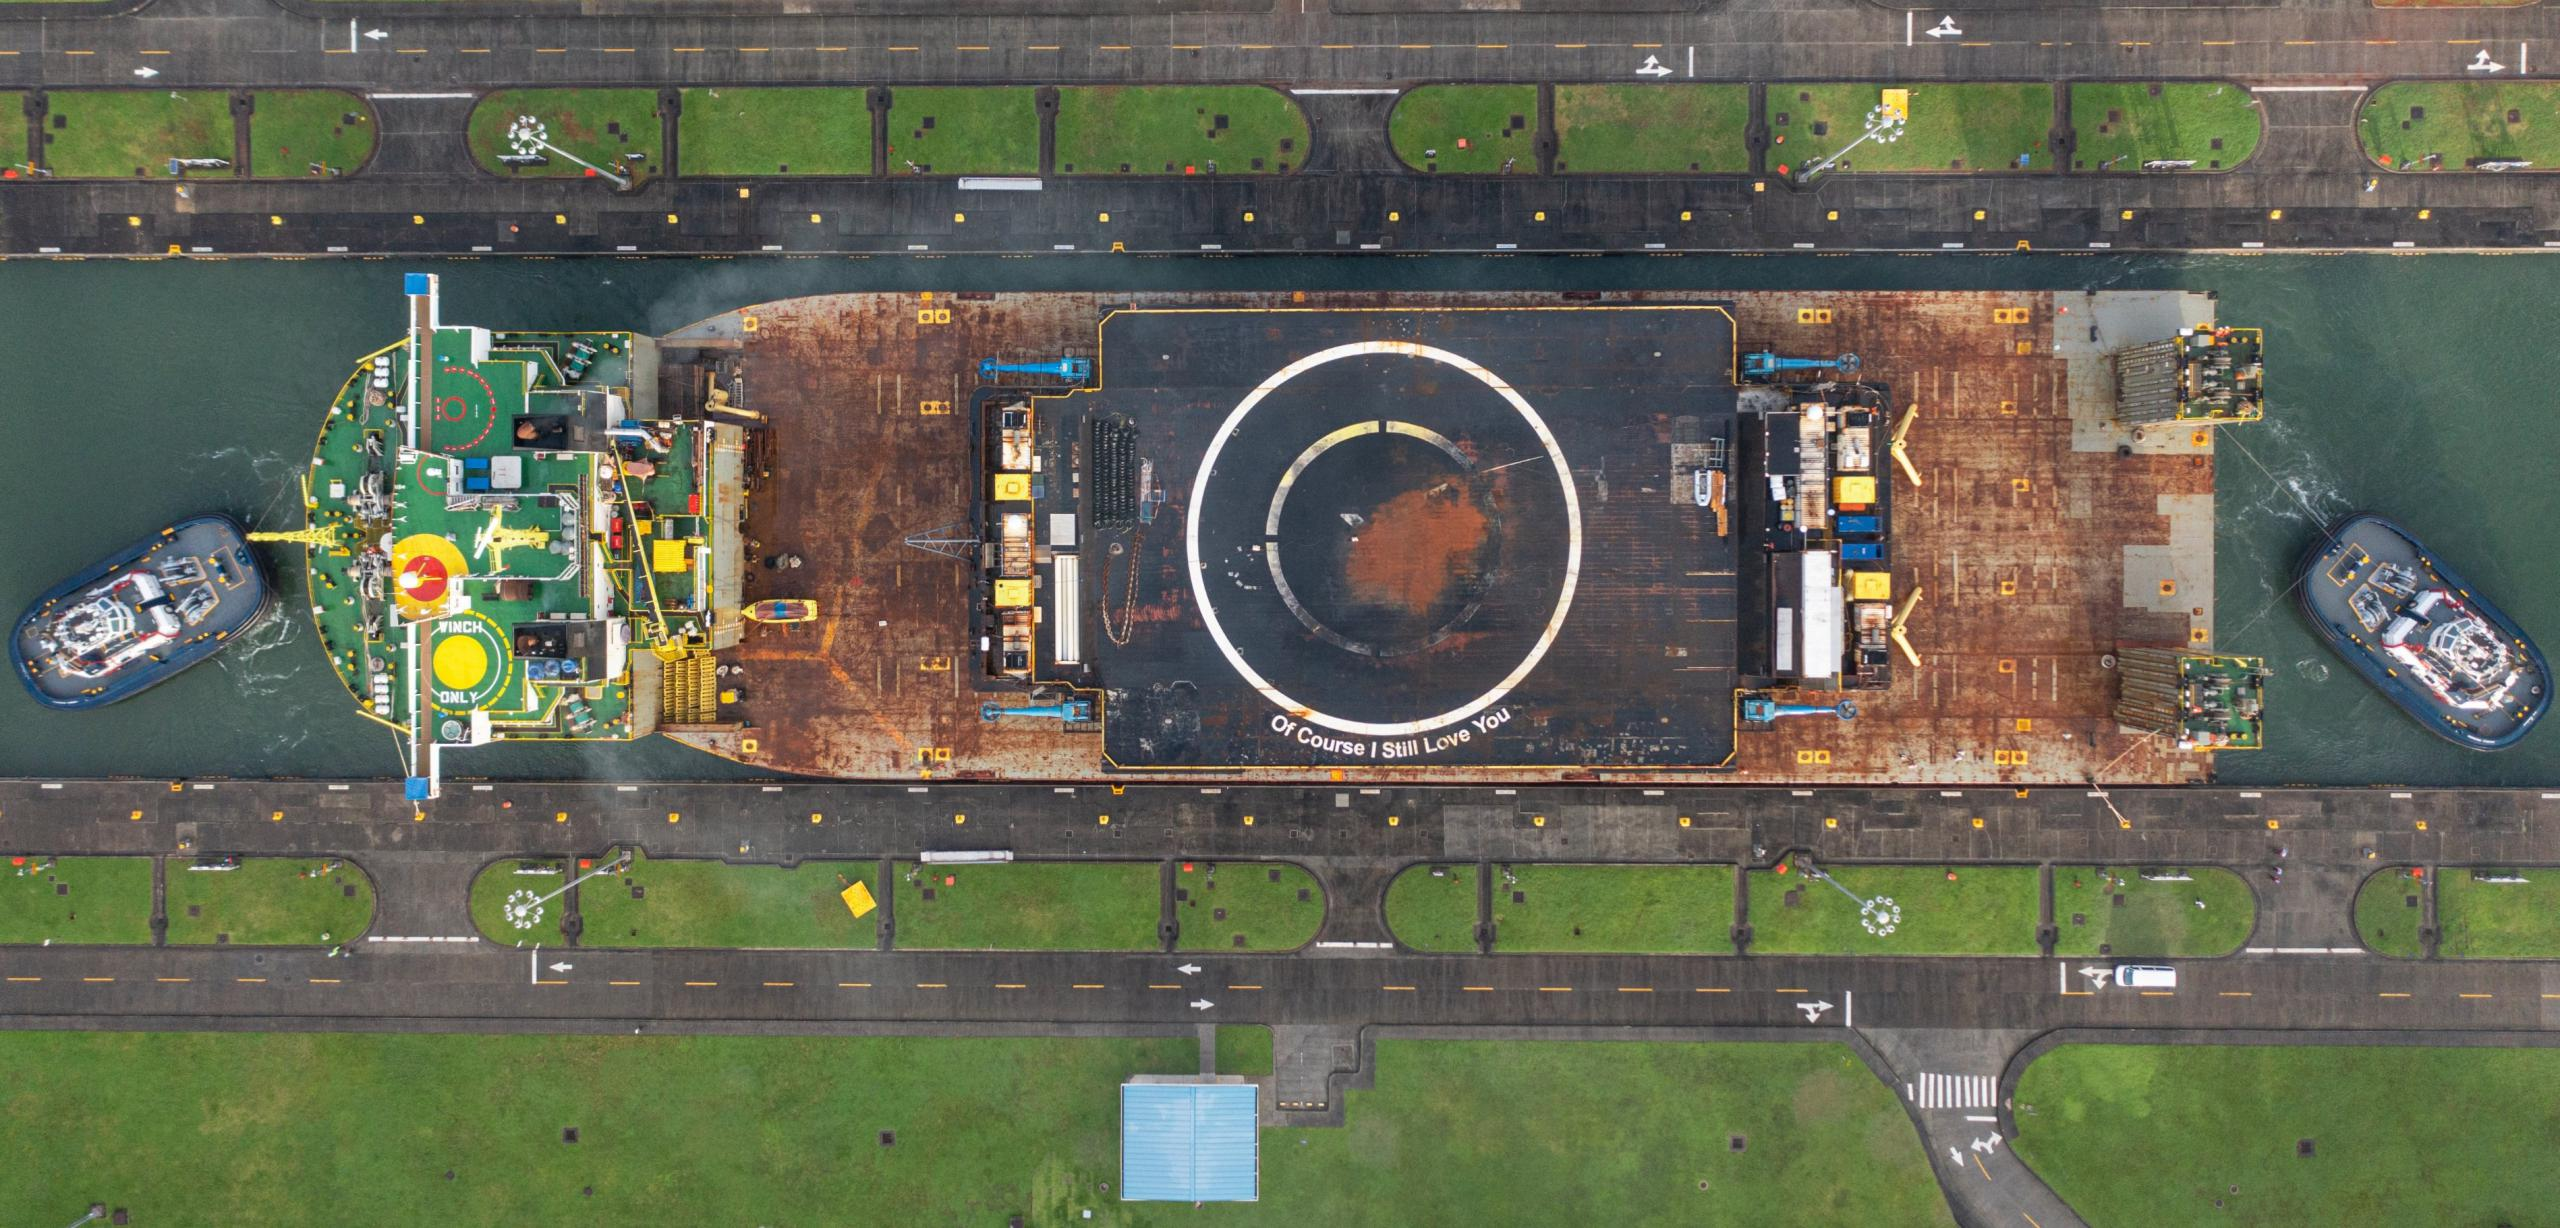 drone ship OCISLY canal transit 062521 (@ThePanamaCanal) 6 crop (c)